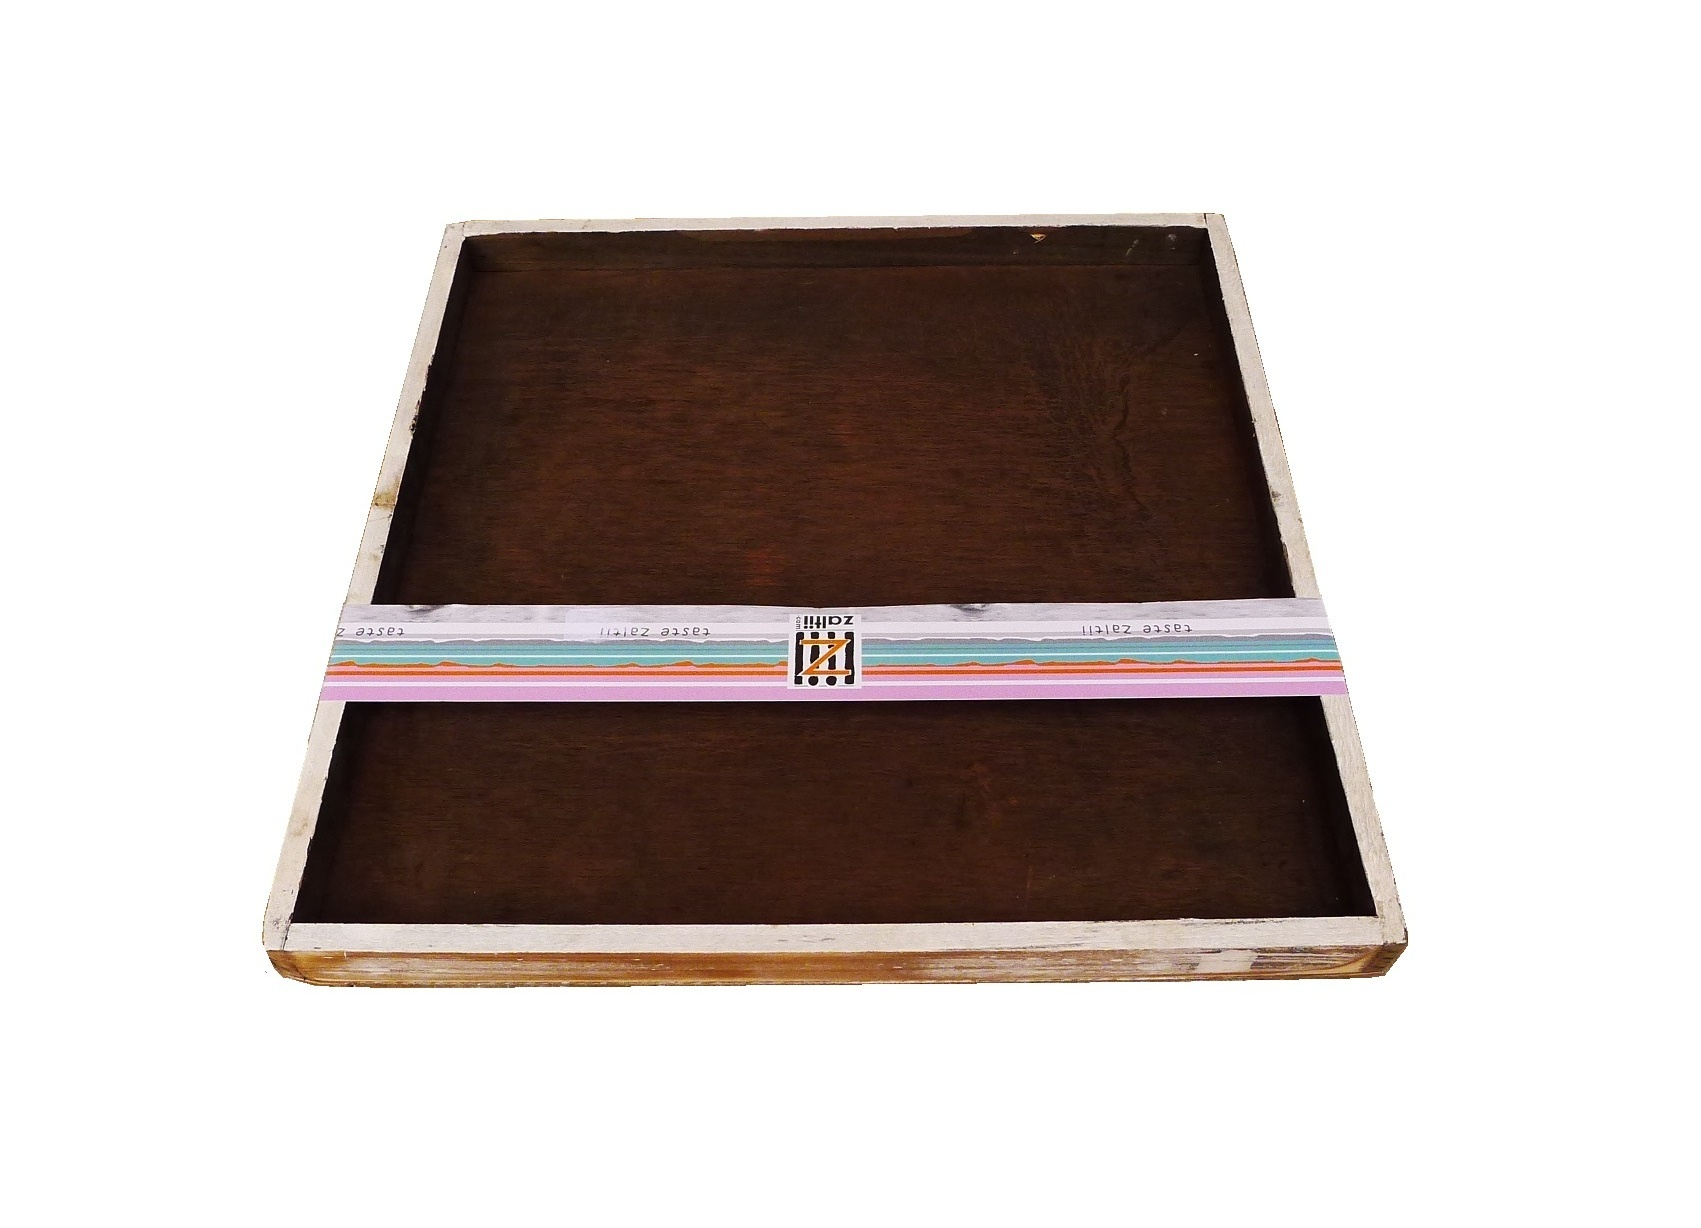 tray brussels brown jessica ciocco 40-1